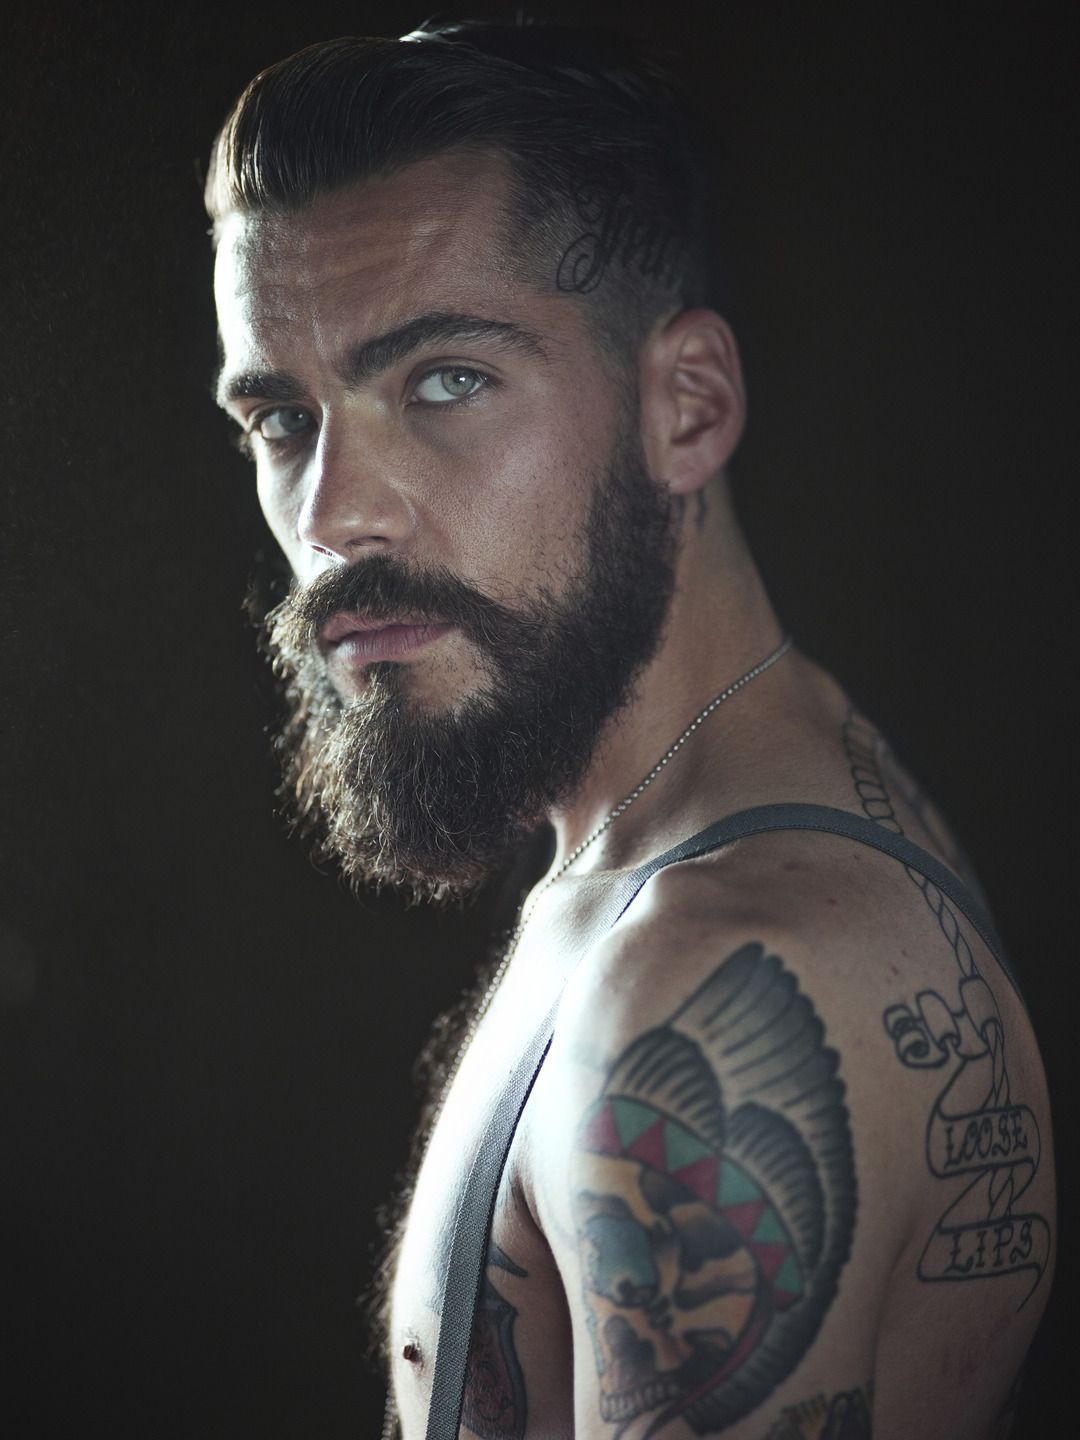 Inked bearded man portraits hipster chic man portrait for Bearded tattooed man